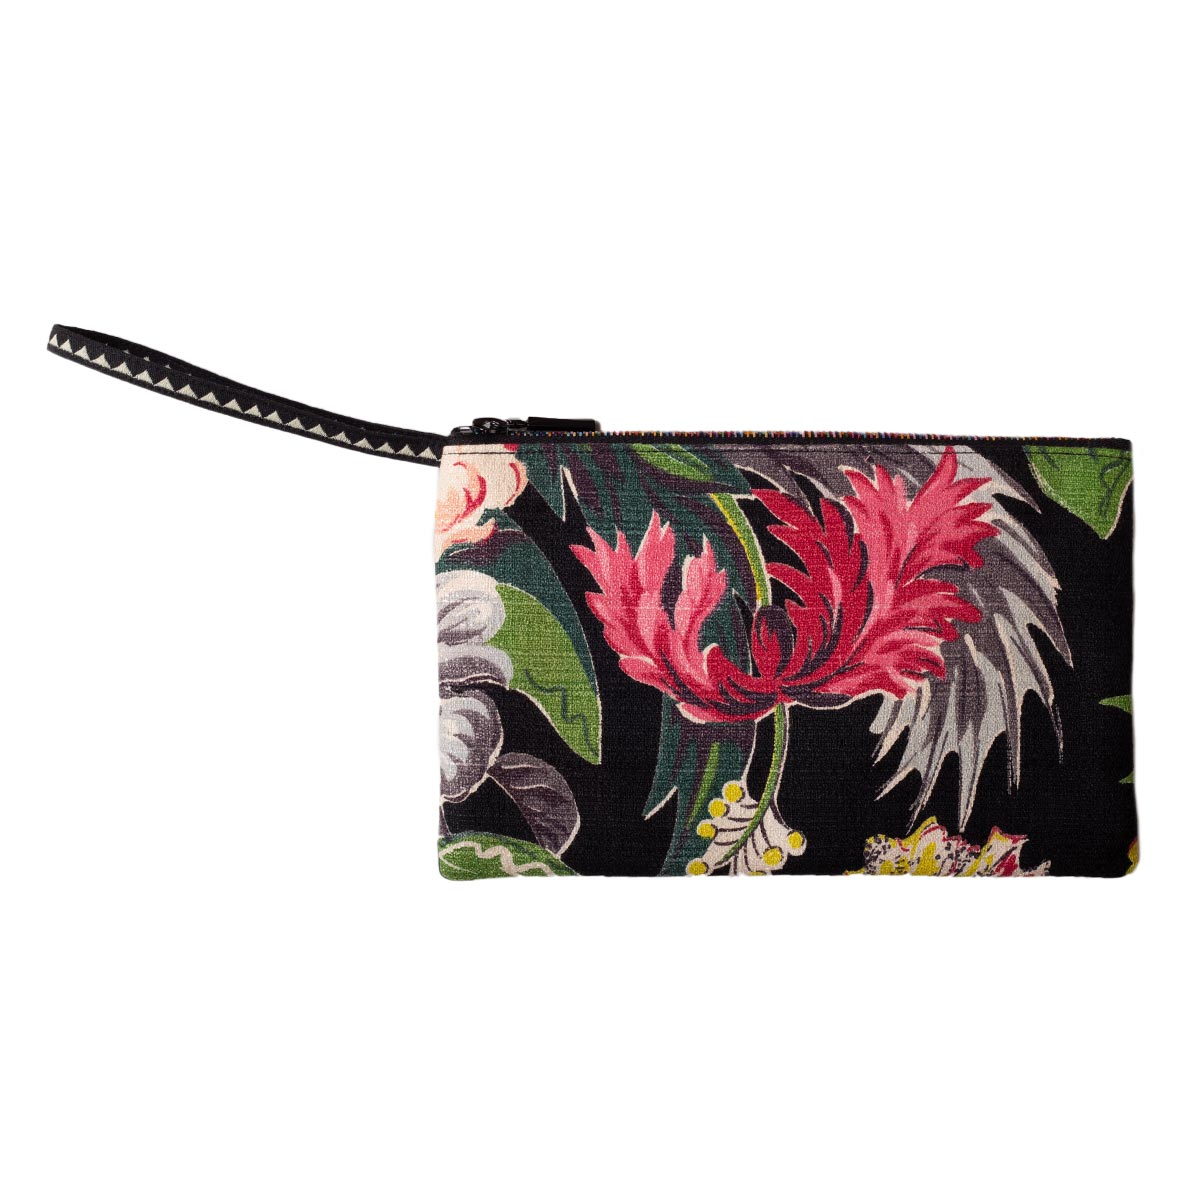 Clutch Bag Floral Motif on Black